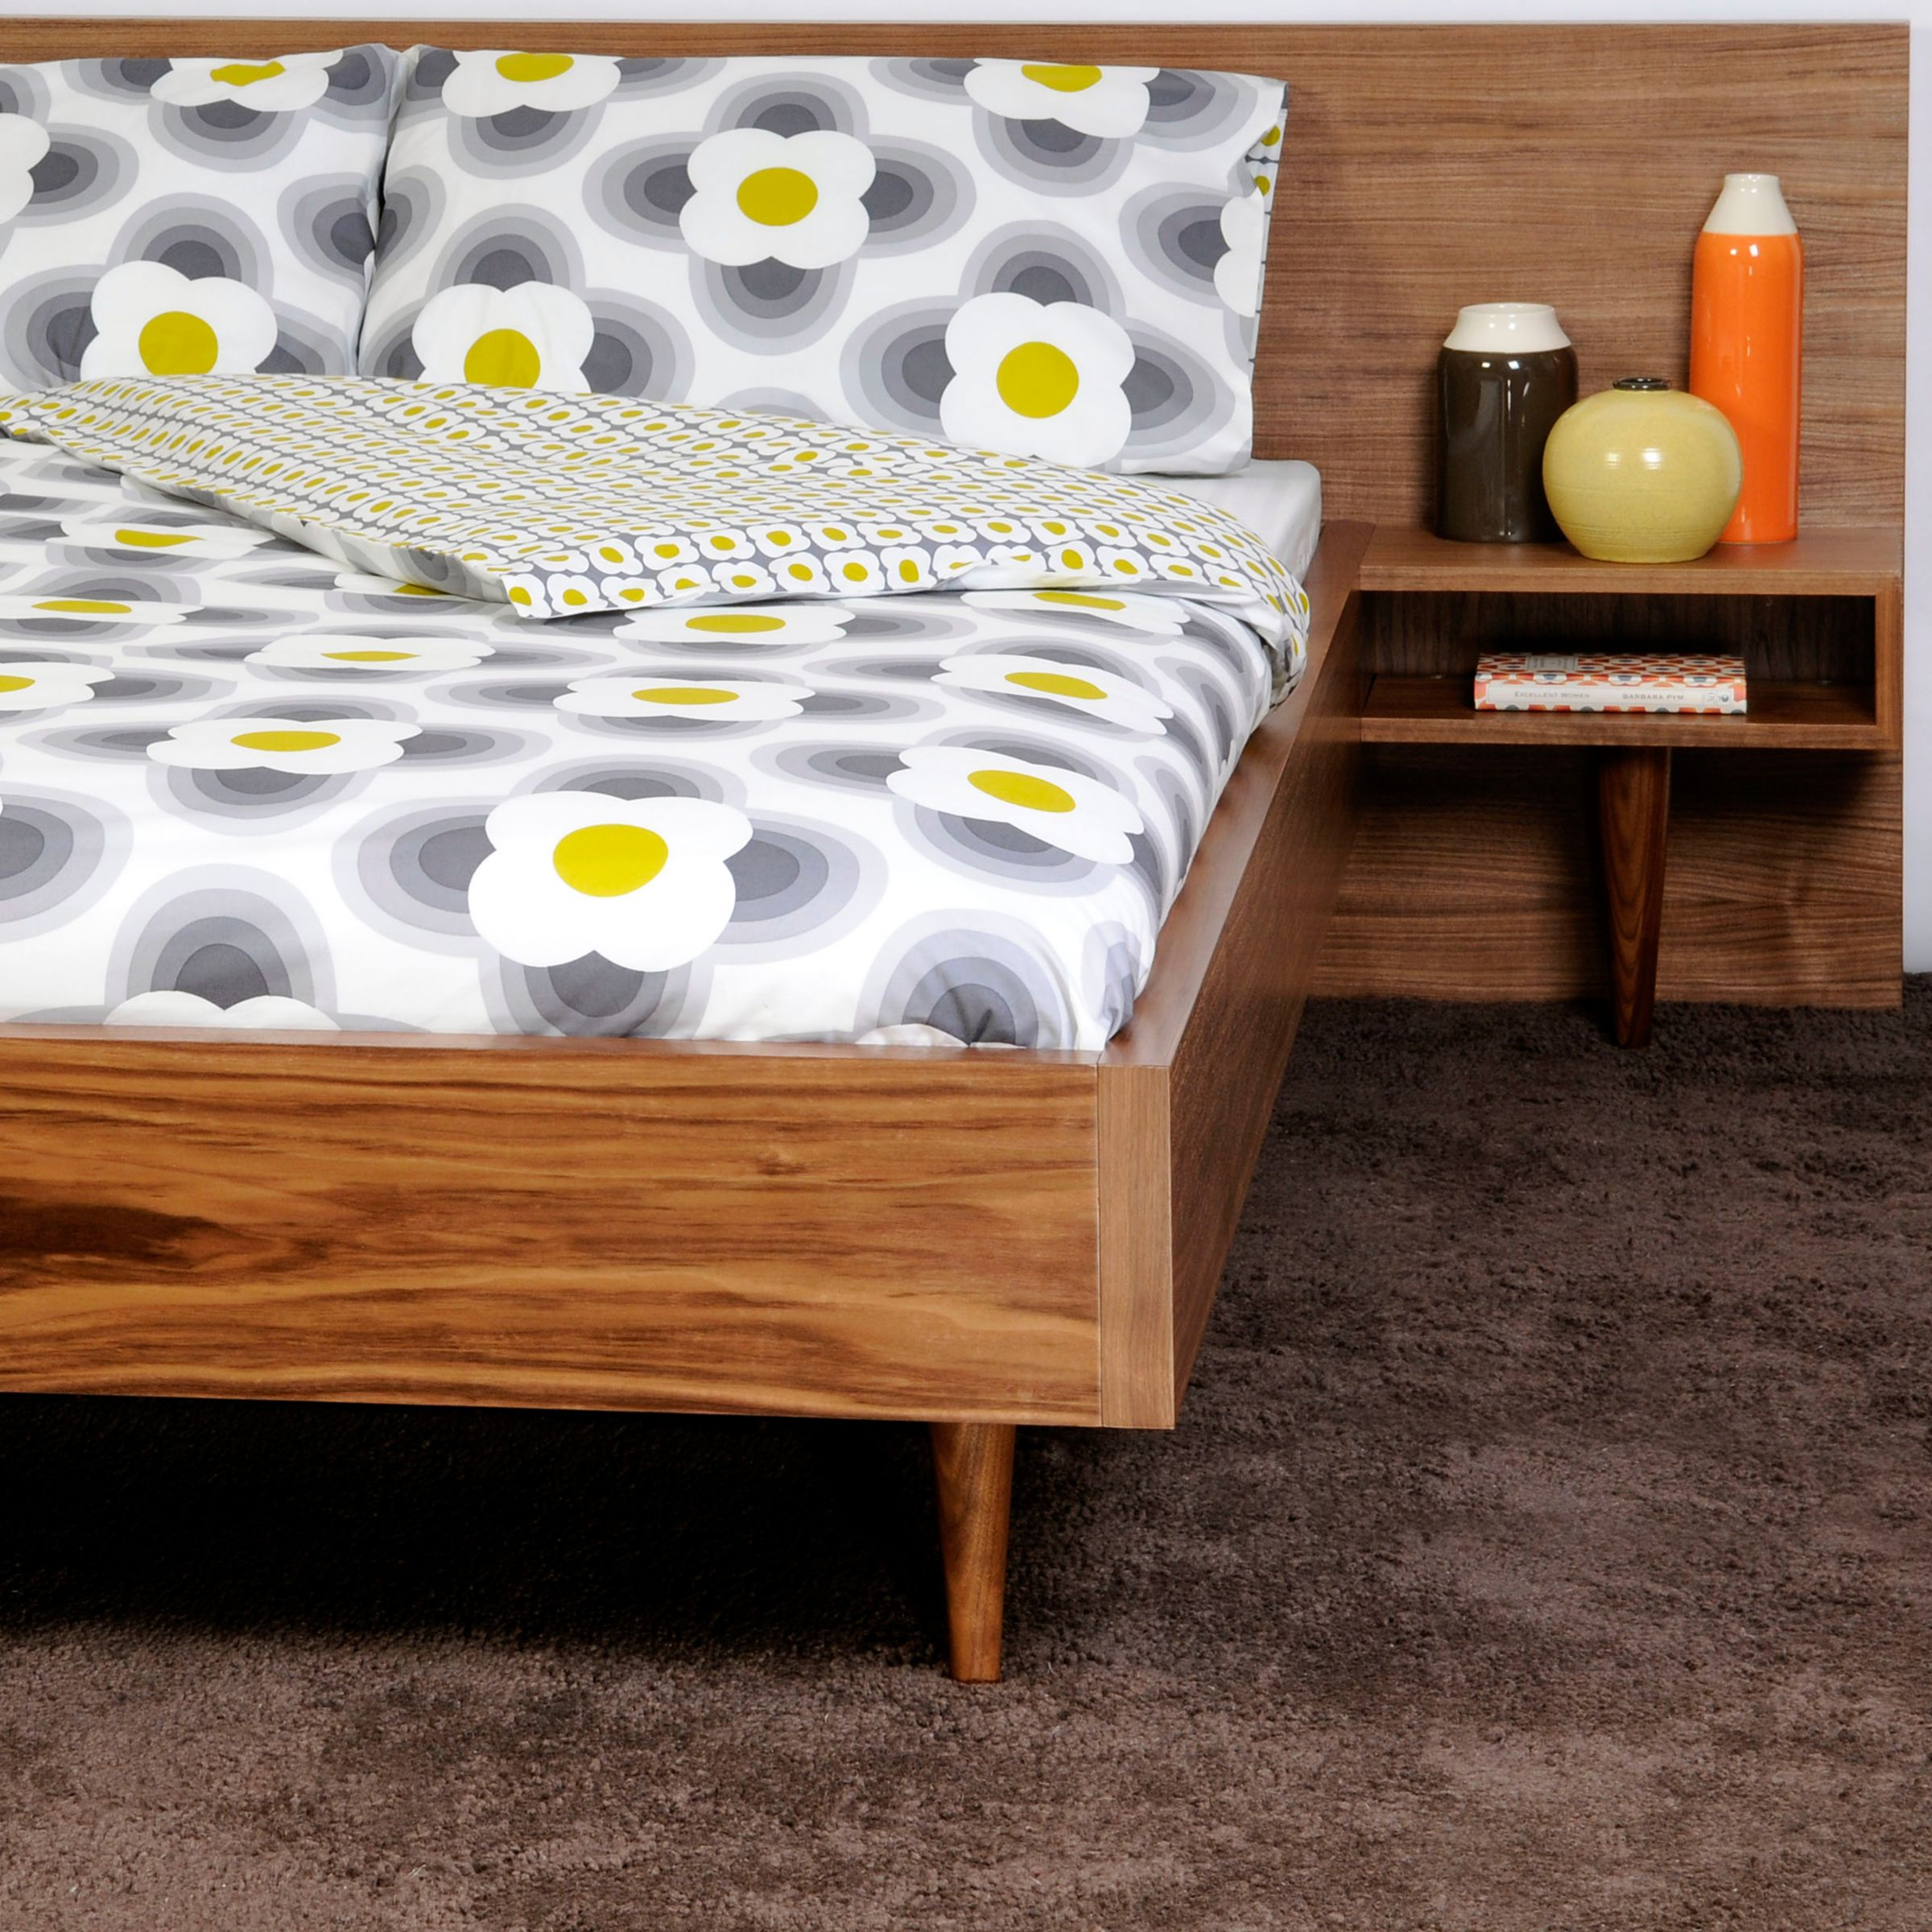 Orla kiely cars single duvet cover